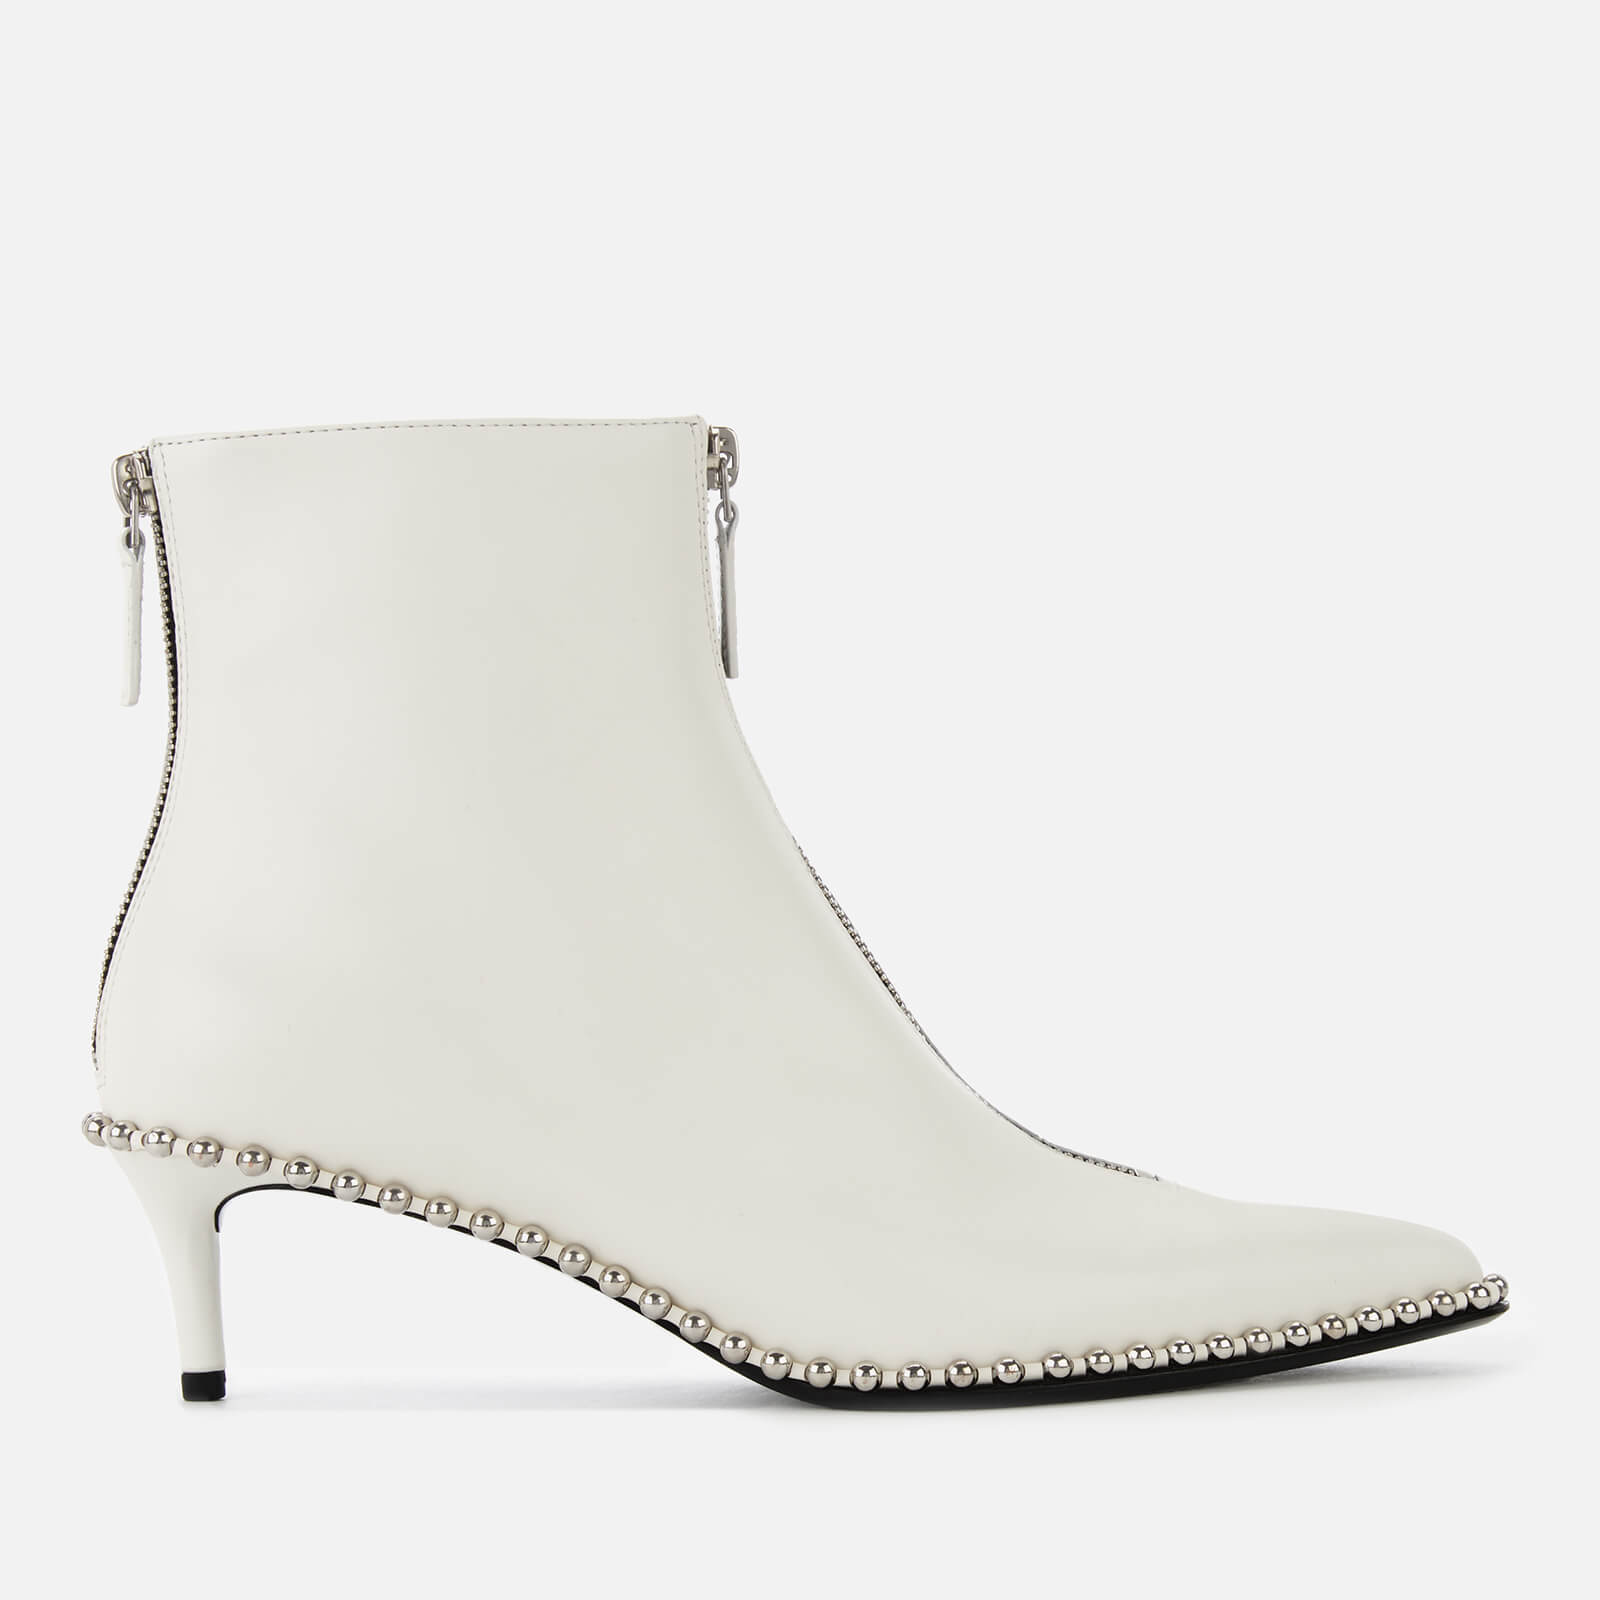 d1e6bad164f Alexander Wang Women s Eri Low Heel Leather Ankle Boots - White - Free UK  Delivery over £50